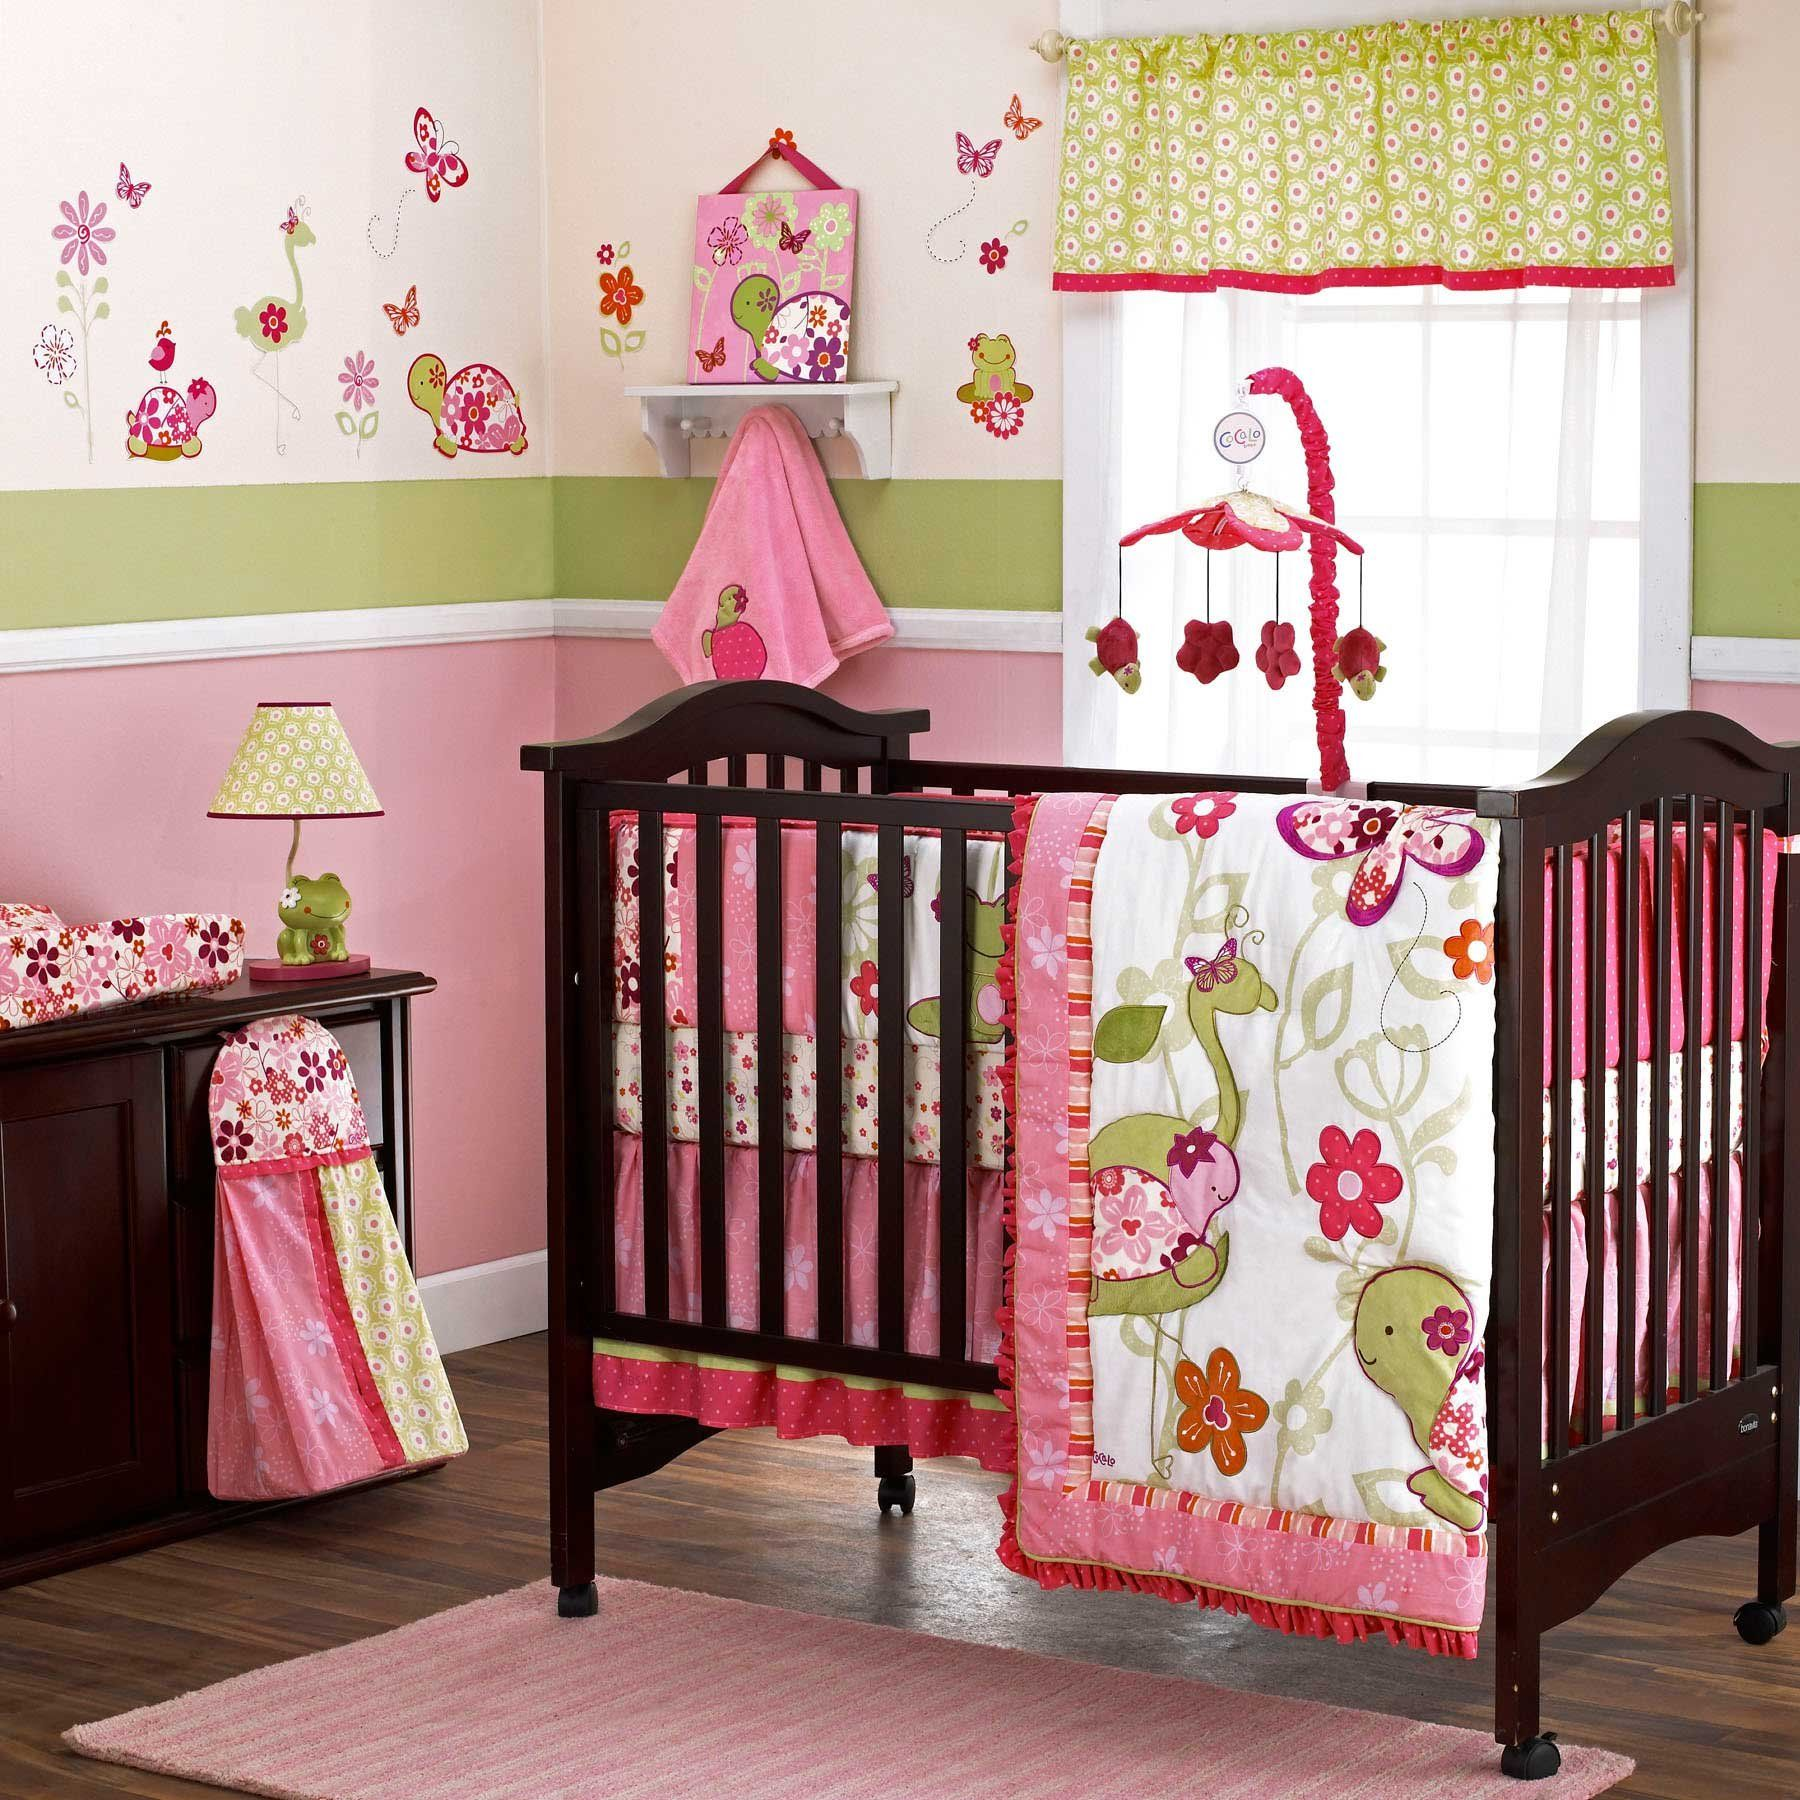 Amazon Com Once Upon A Pond 9 Piece Infant Crib Bedding Set By